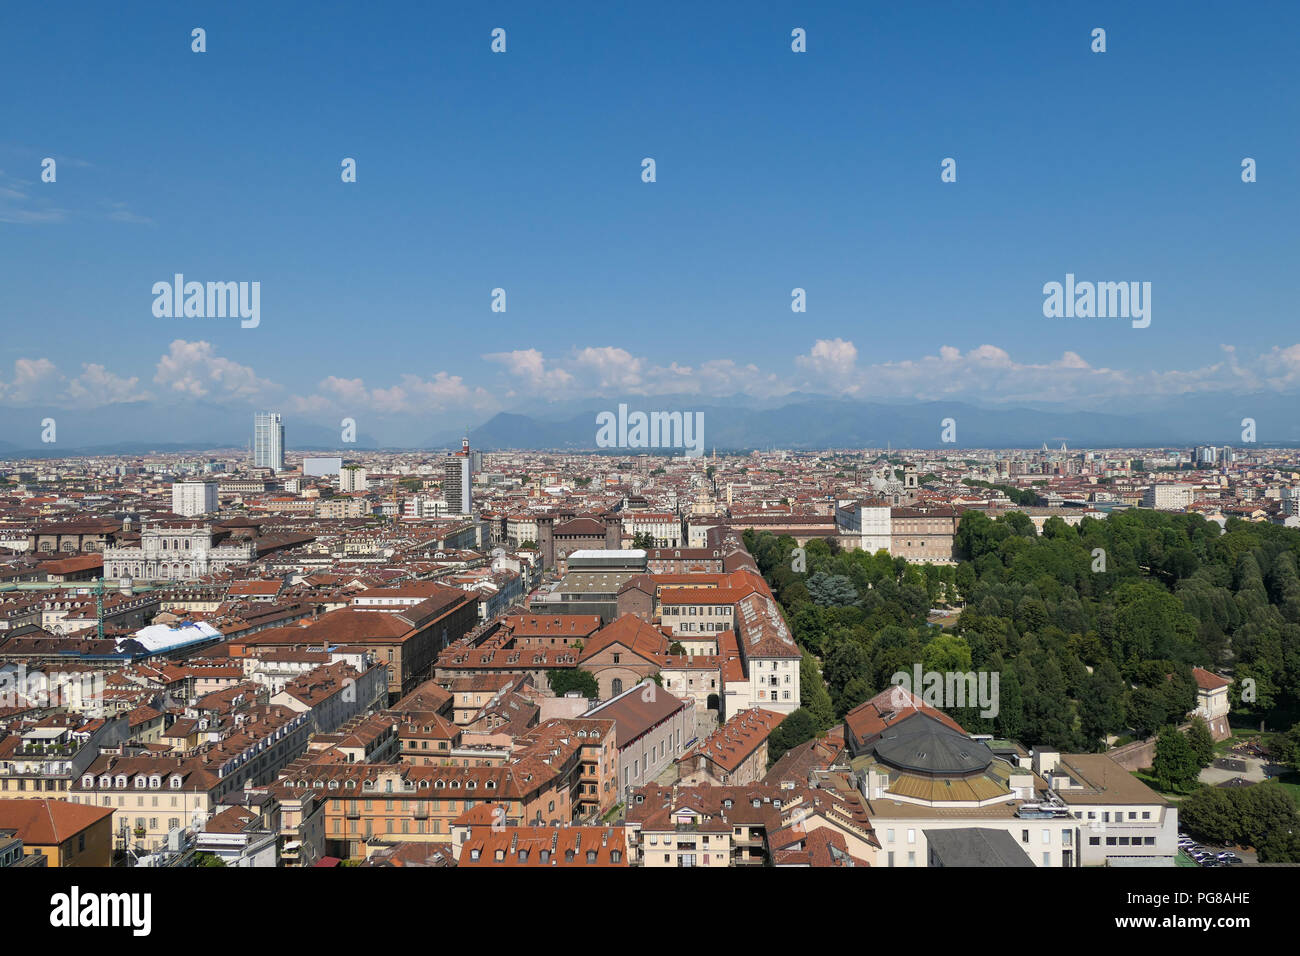 view of Turin and alps from the Mole Antonelliana, Italy - Stock Image